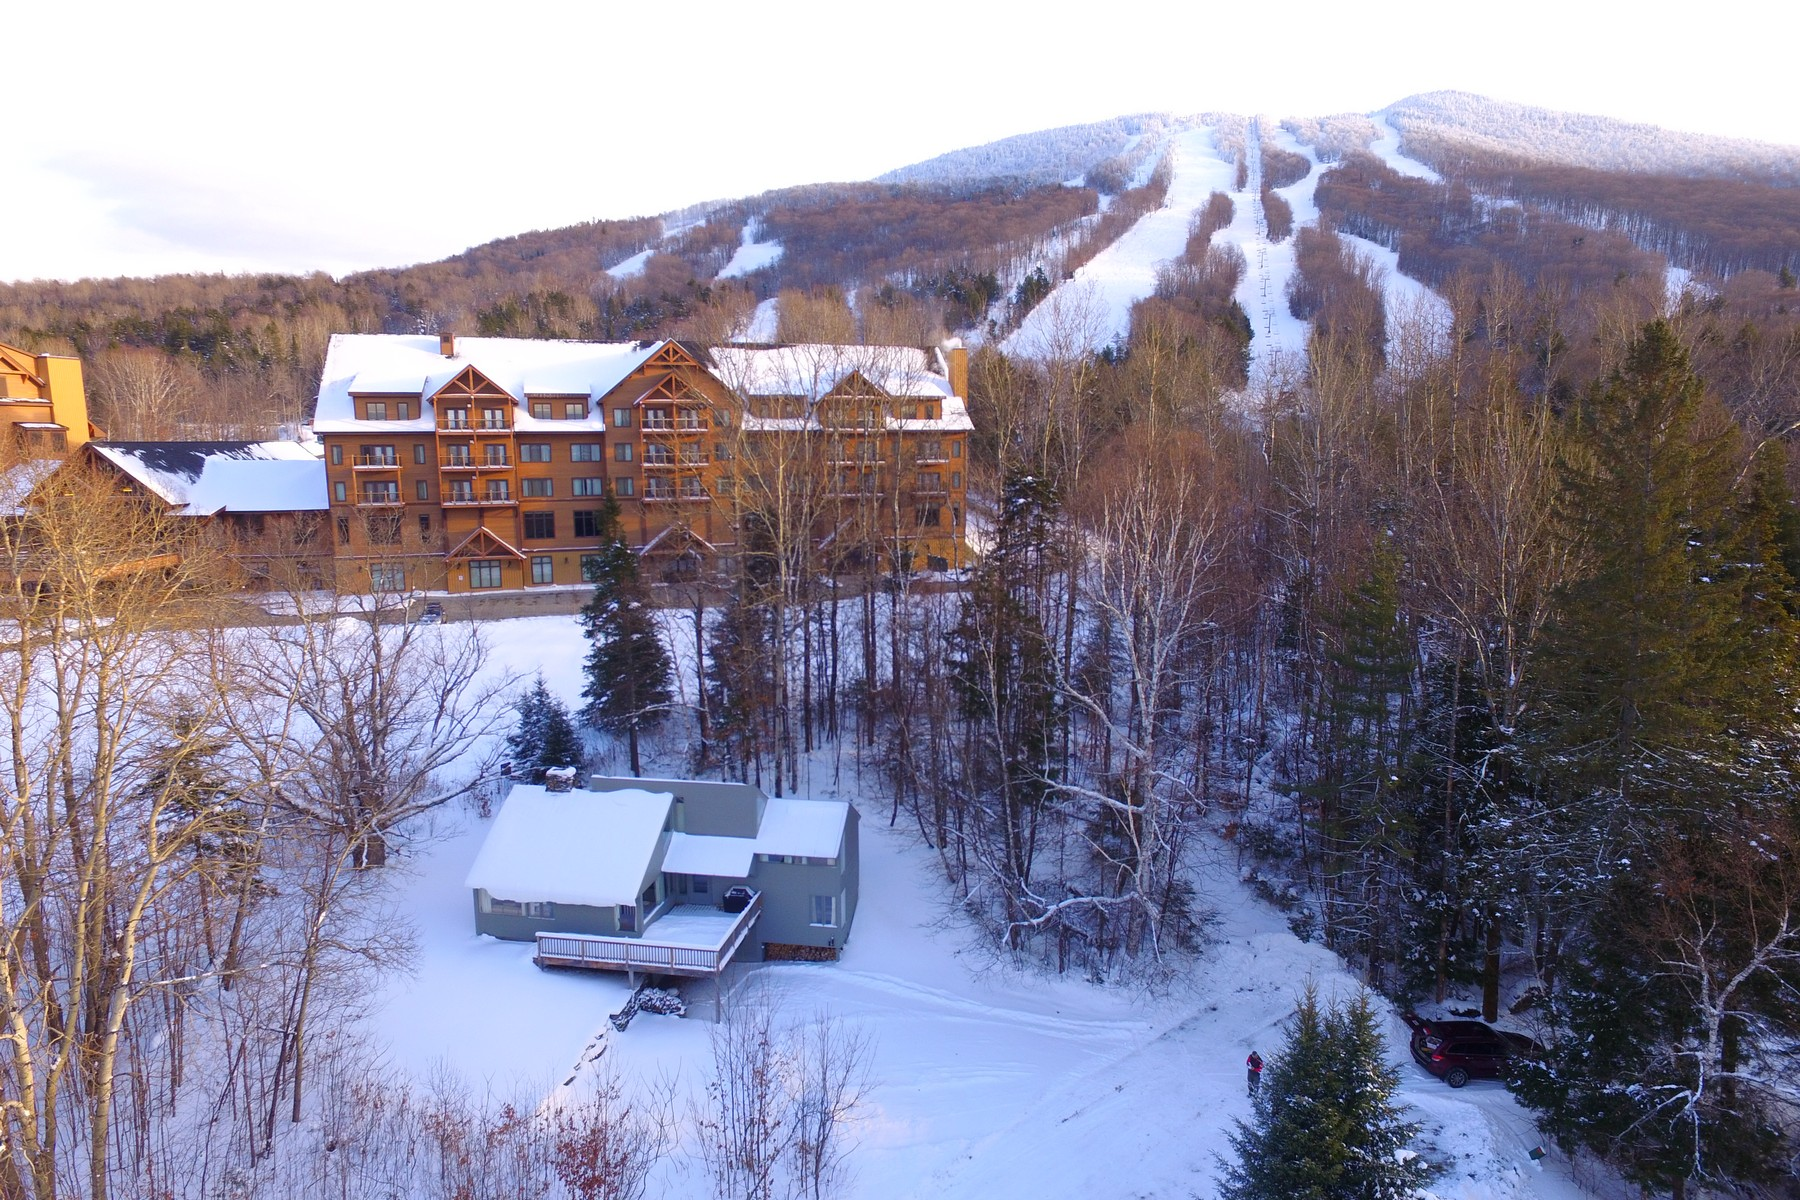 Casa Unifamiliar por un Venta en Slopeside on Burke Mountain 589 Alpine Ln Burke, Vermont, 05832 Estados Unidos